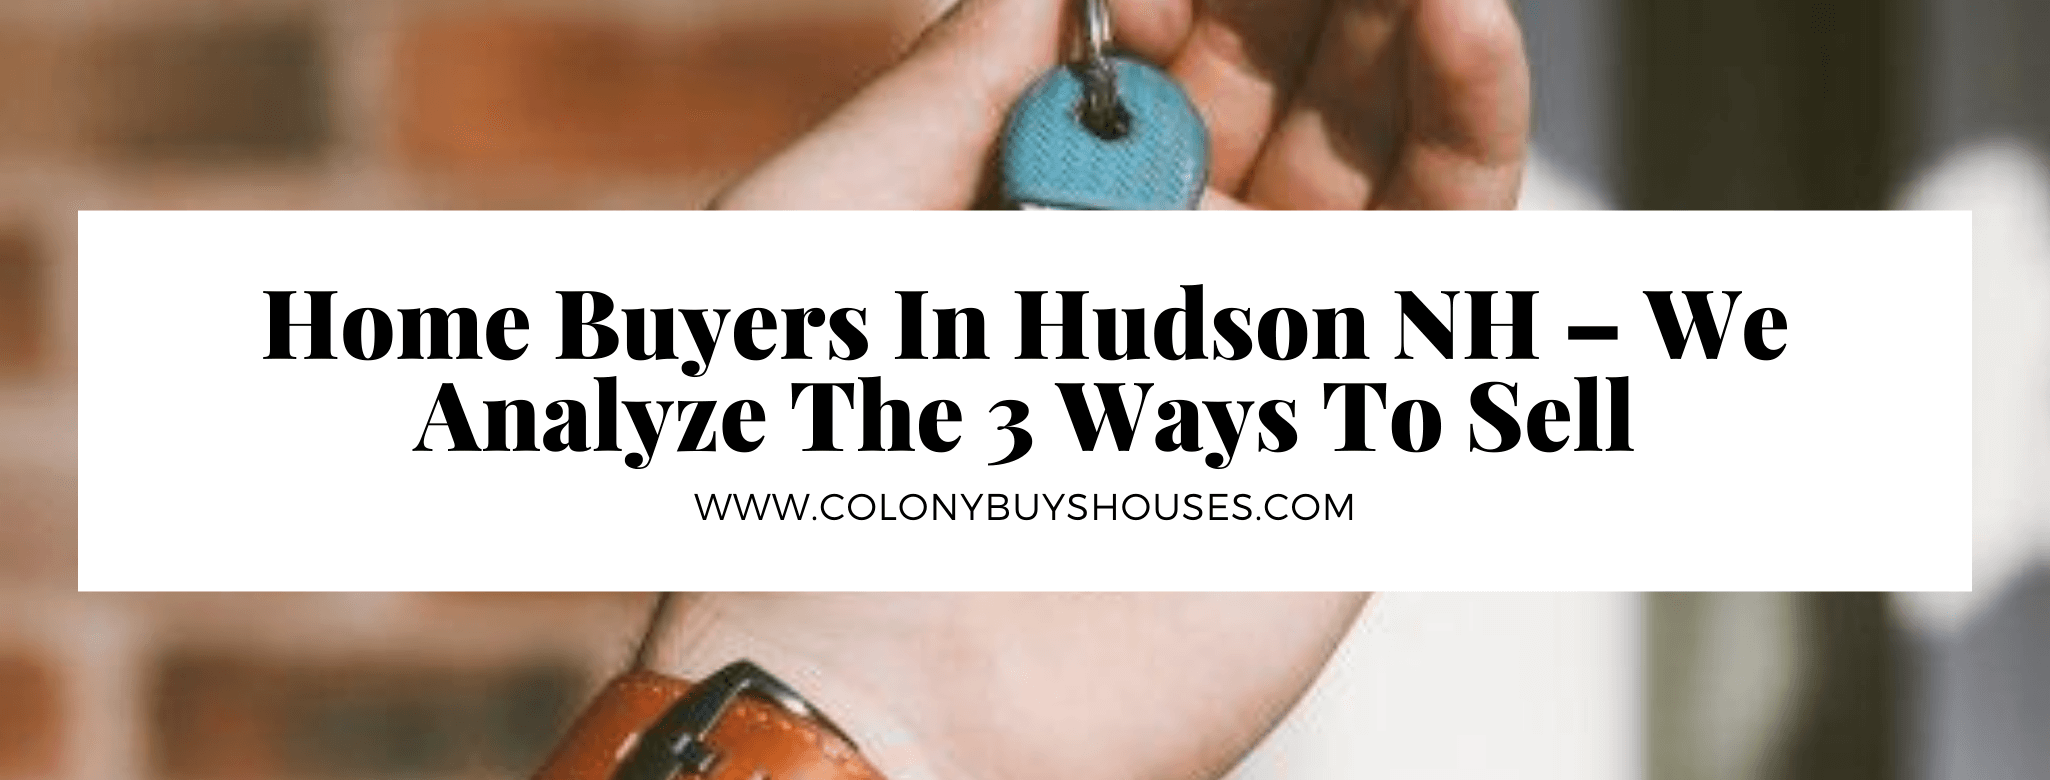 we buy your property in Hudson NH